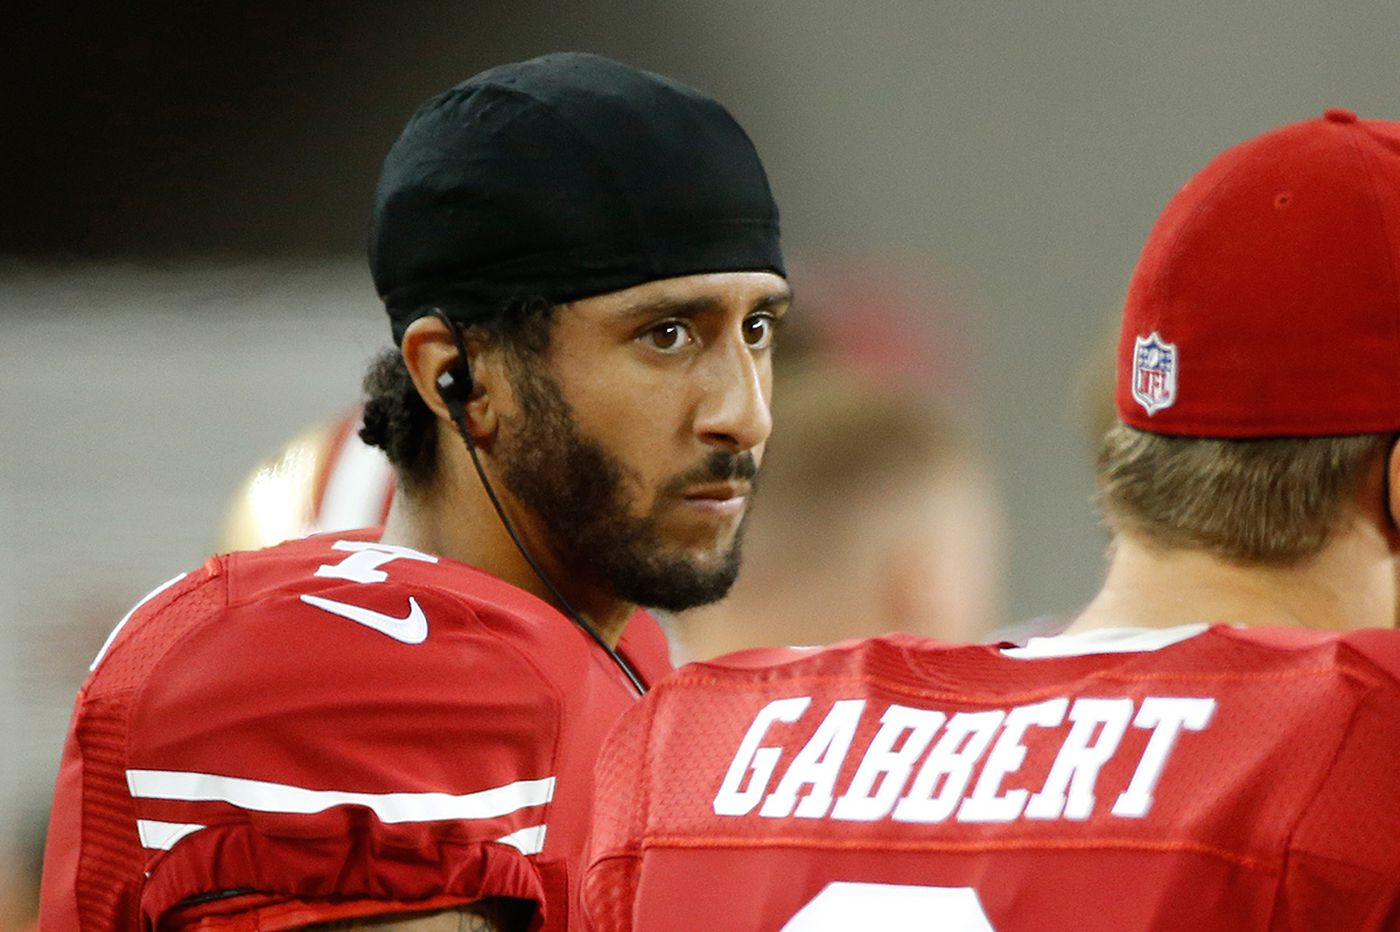 Armstrong: Not standing for national anthem? I support Kaepernick 100%